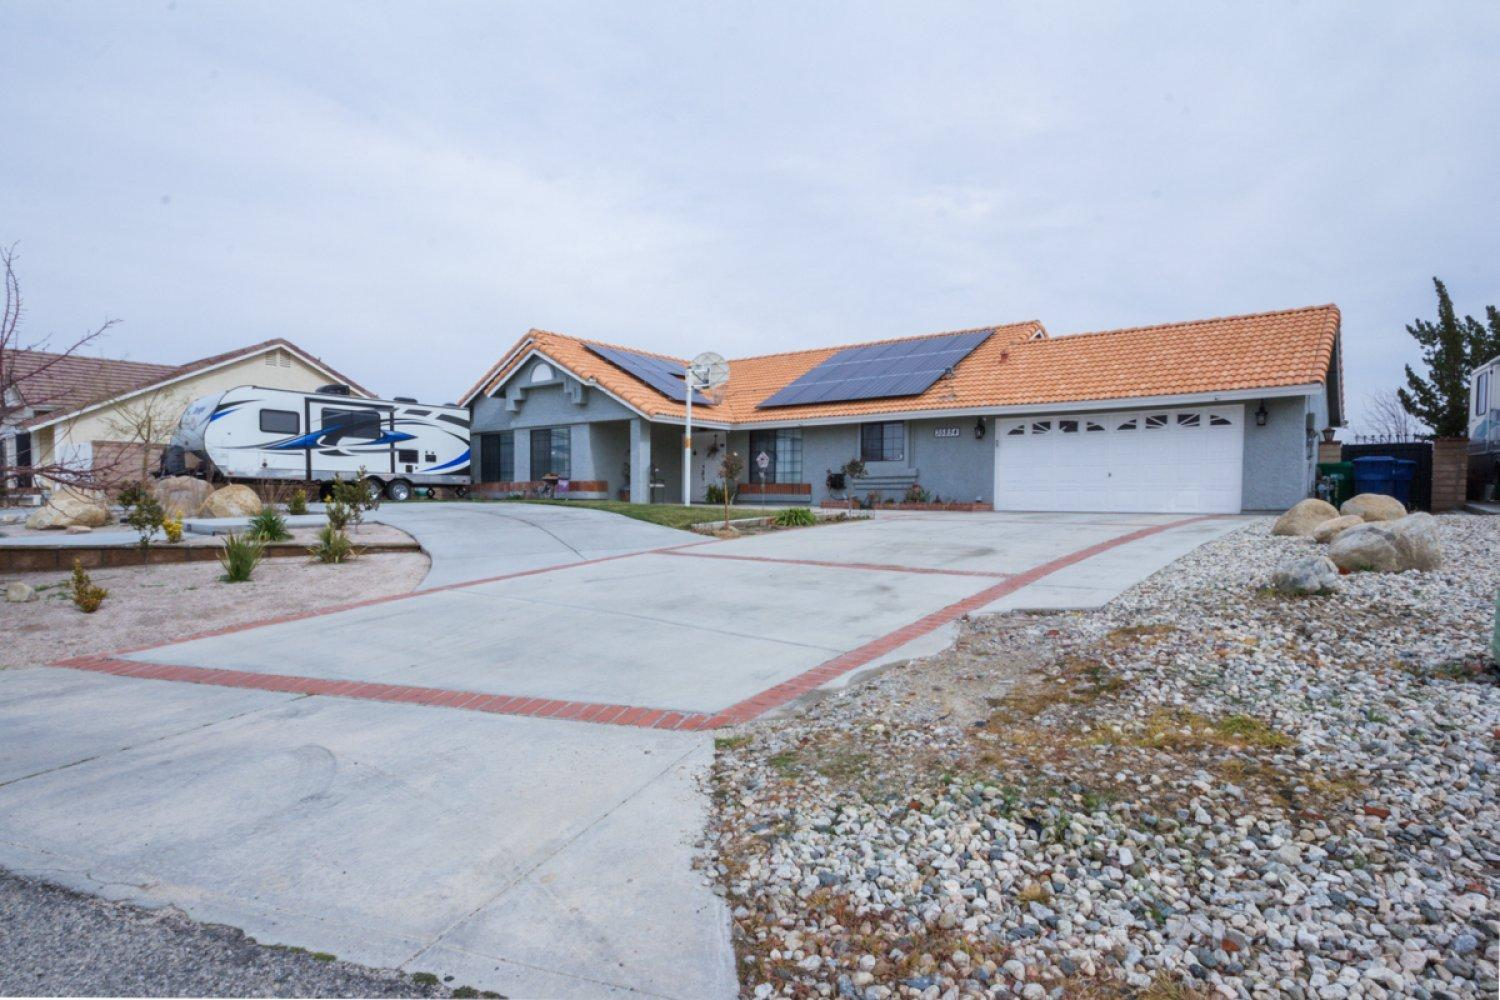 35854 E 43rd Street, Palmdale in Los Angeles County, CA 93552 Home for Sale